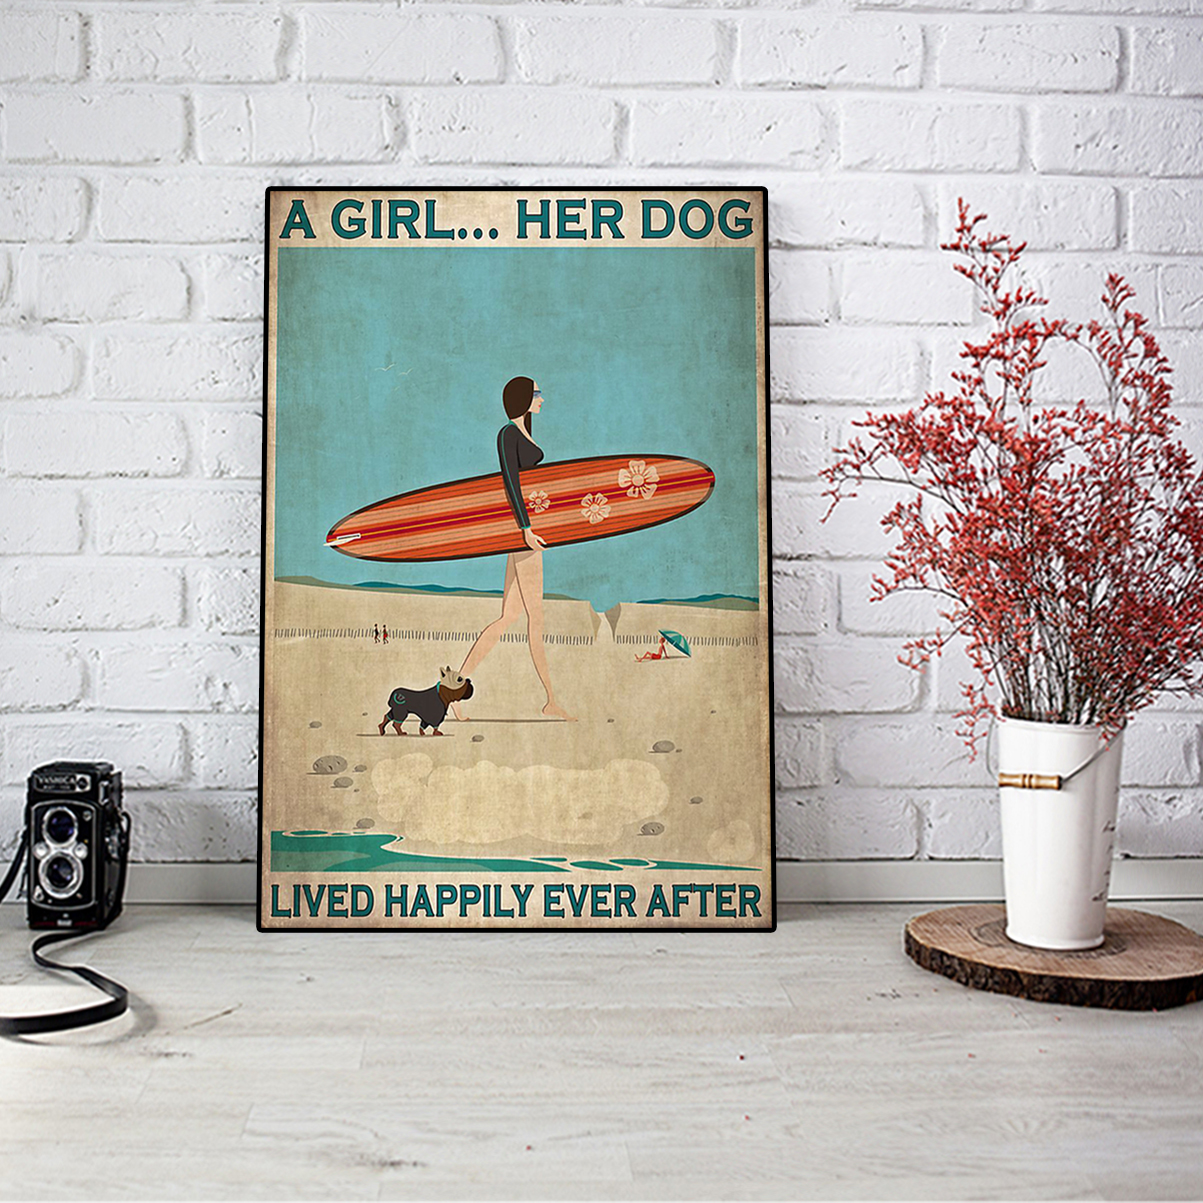 Surfing a girl her dog lived happily ever after poster A3